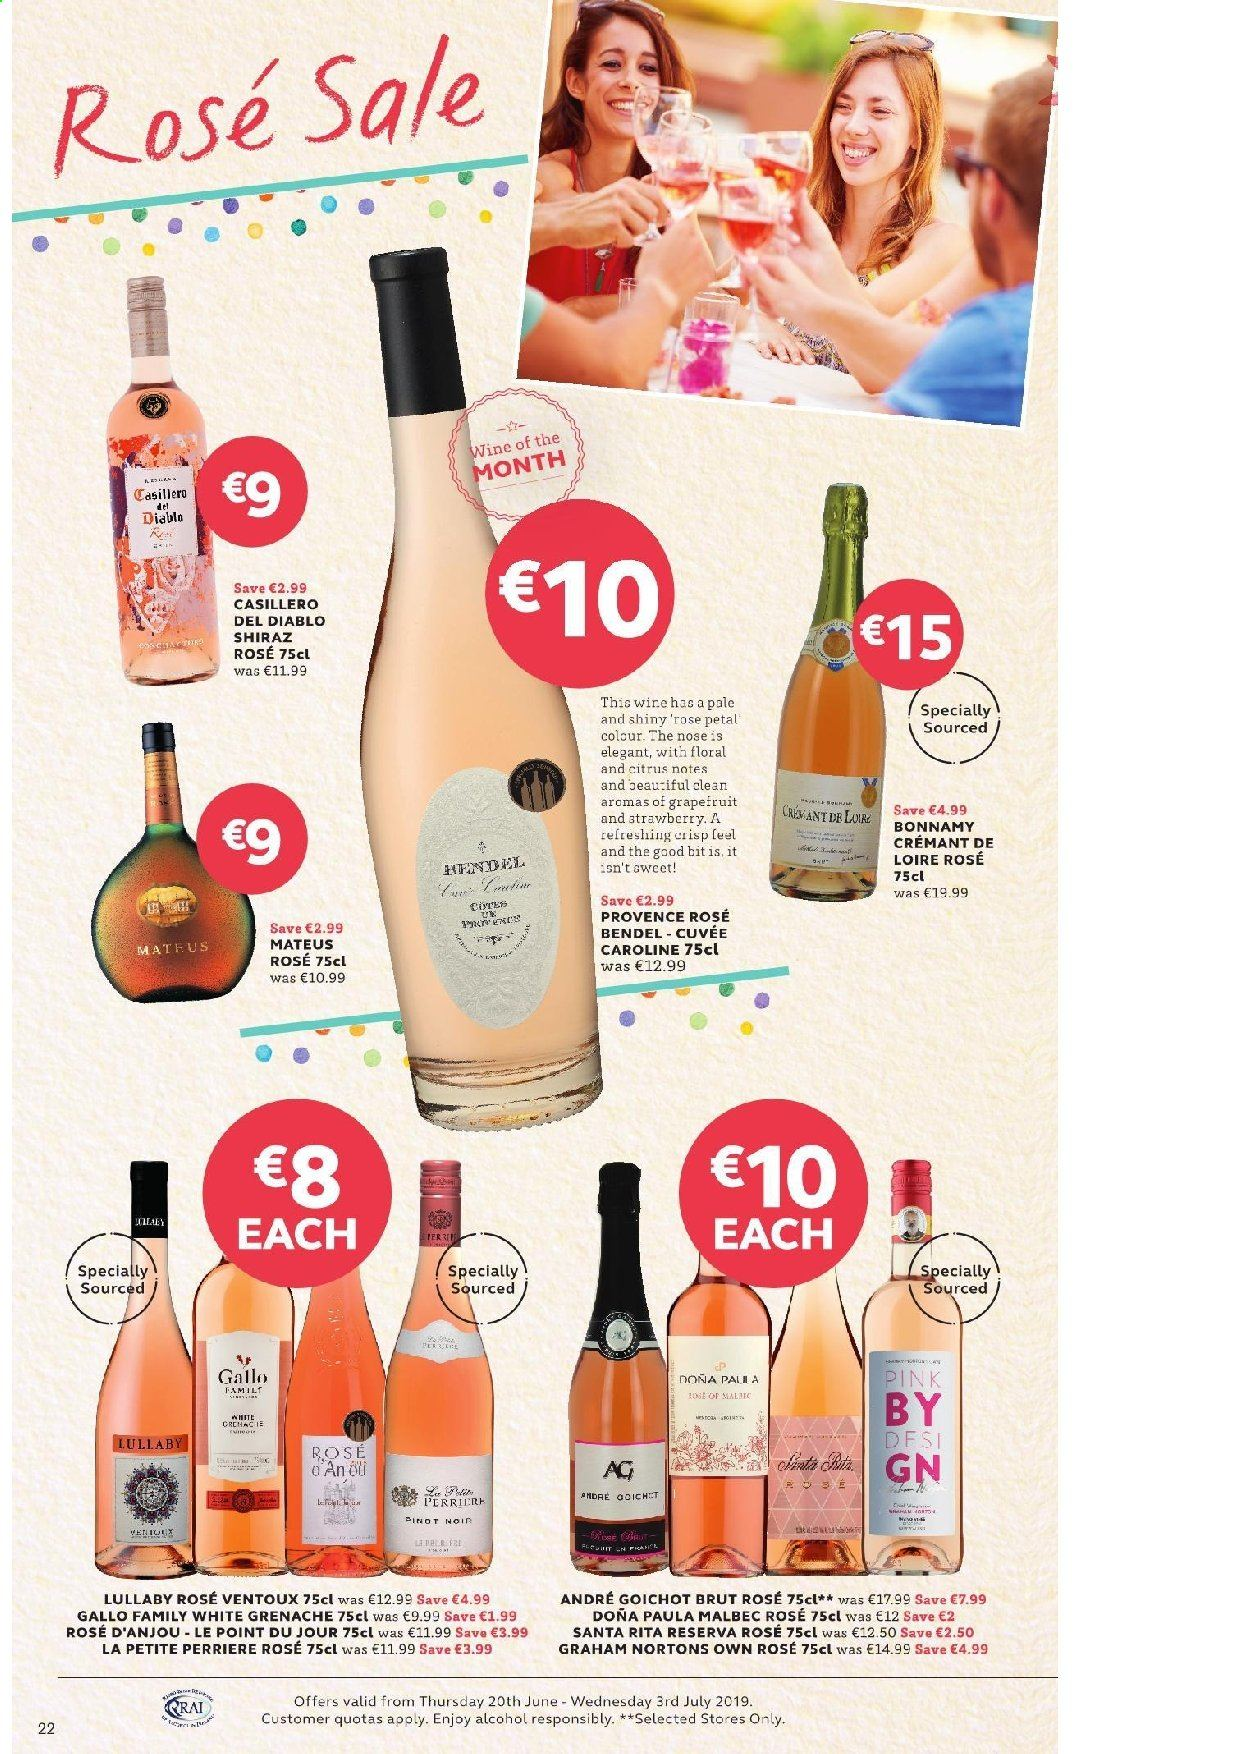 SuperValu offer  - 20.6.2019 - 3.7.2019 - Sales products - Perrier, wine, Cuvée, Gallo Family, alcohol, Shiraz, Grenache, Brut. Page 22.